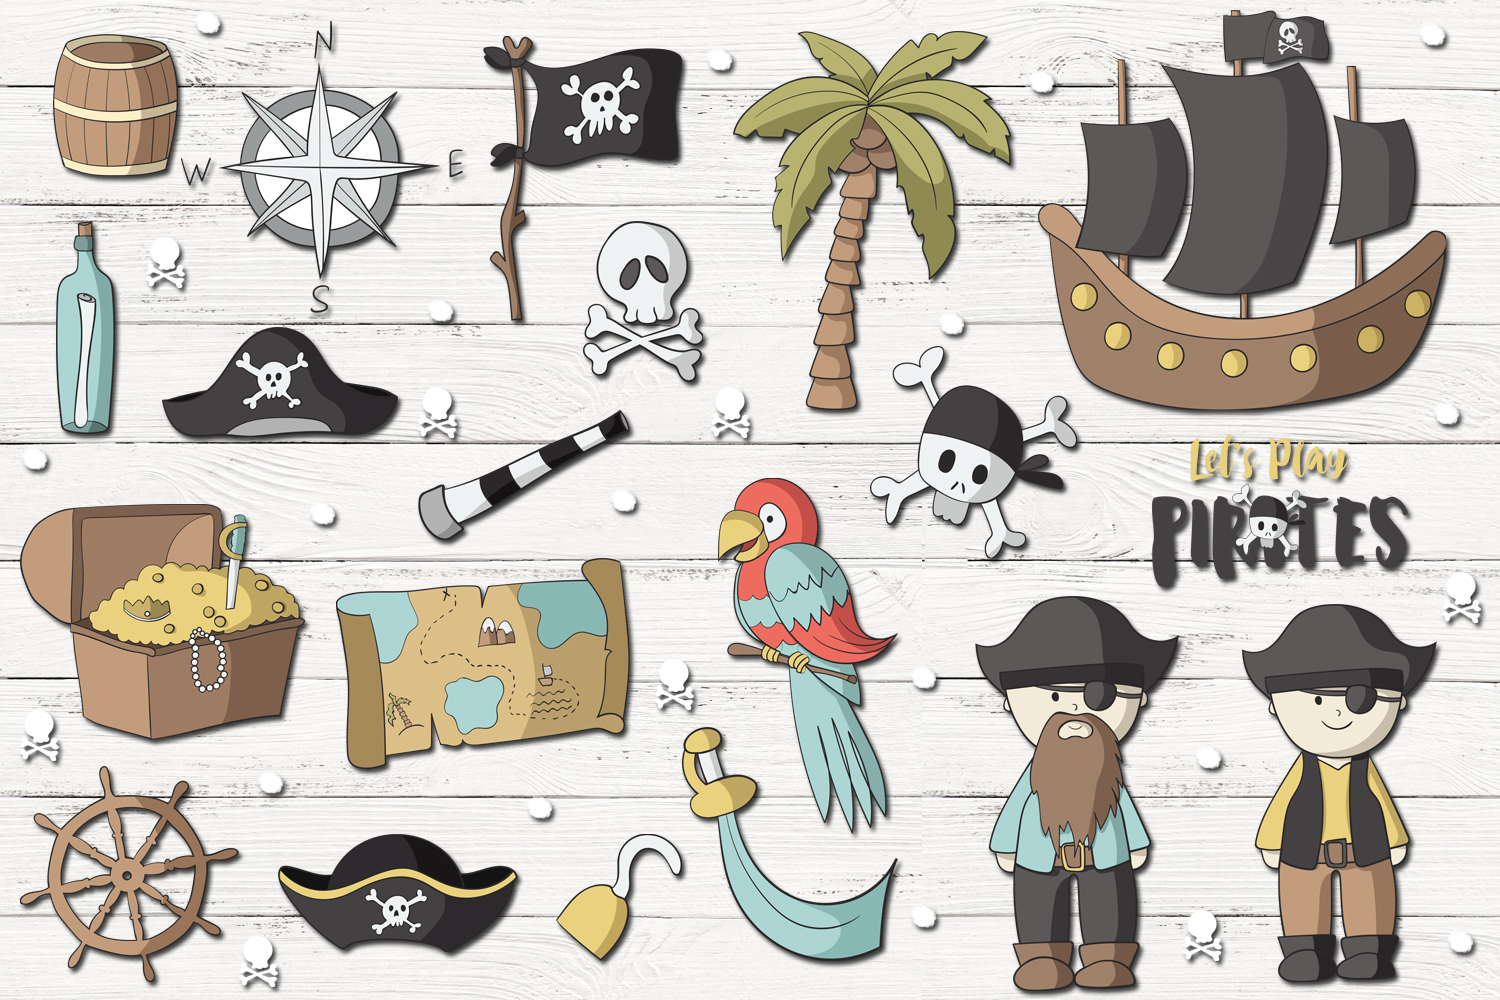 Lets Play Pirates example image 2